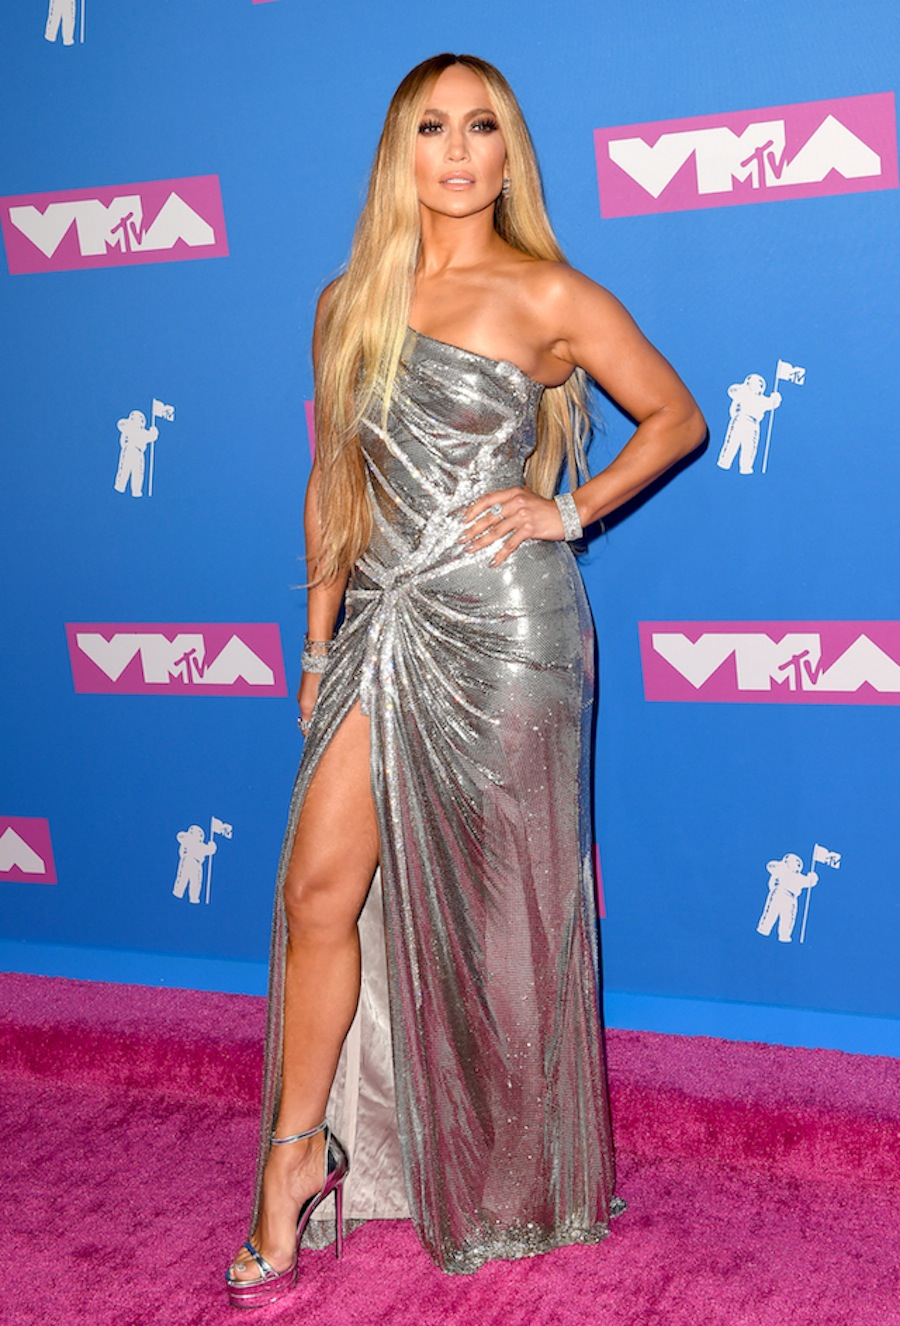 d9a098dce0 The 7 Hottest Red Carpet Looks at the 2018 MTV VMAs!